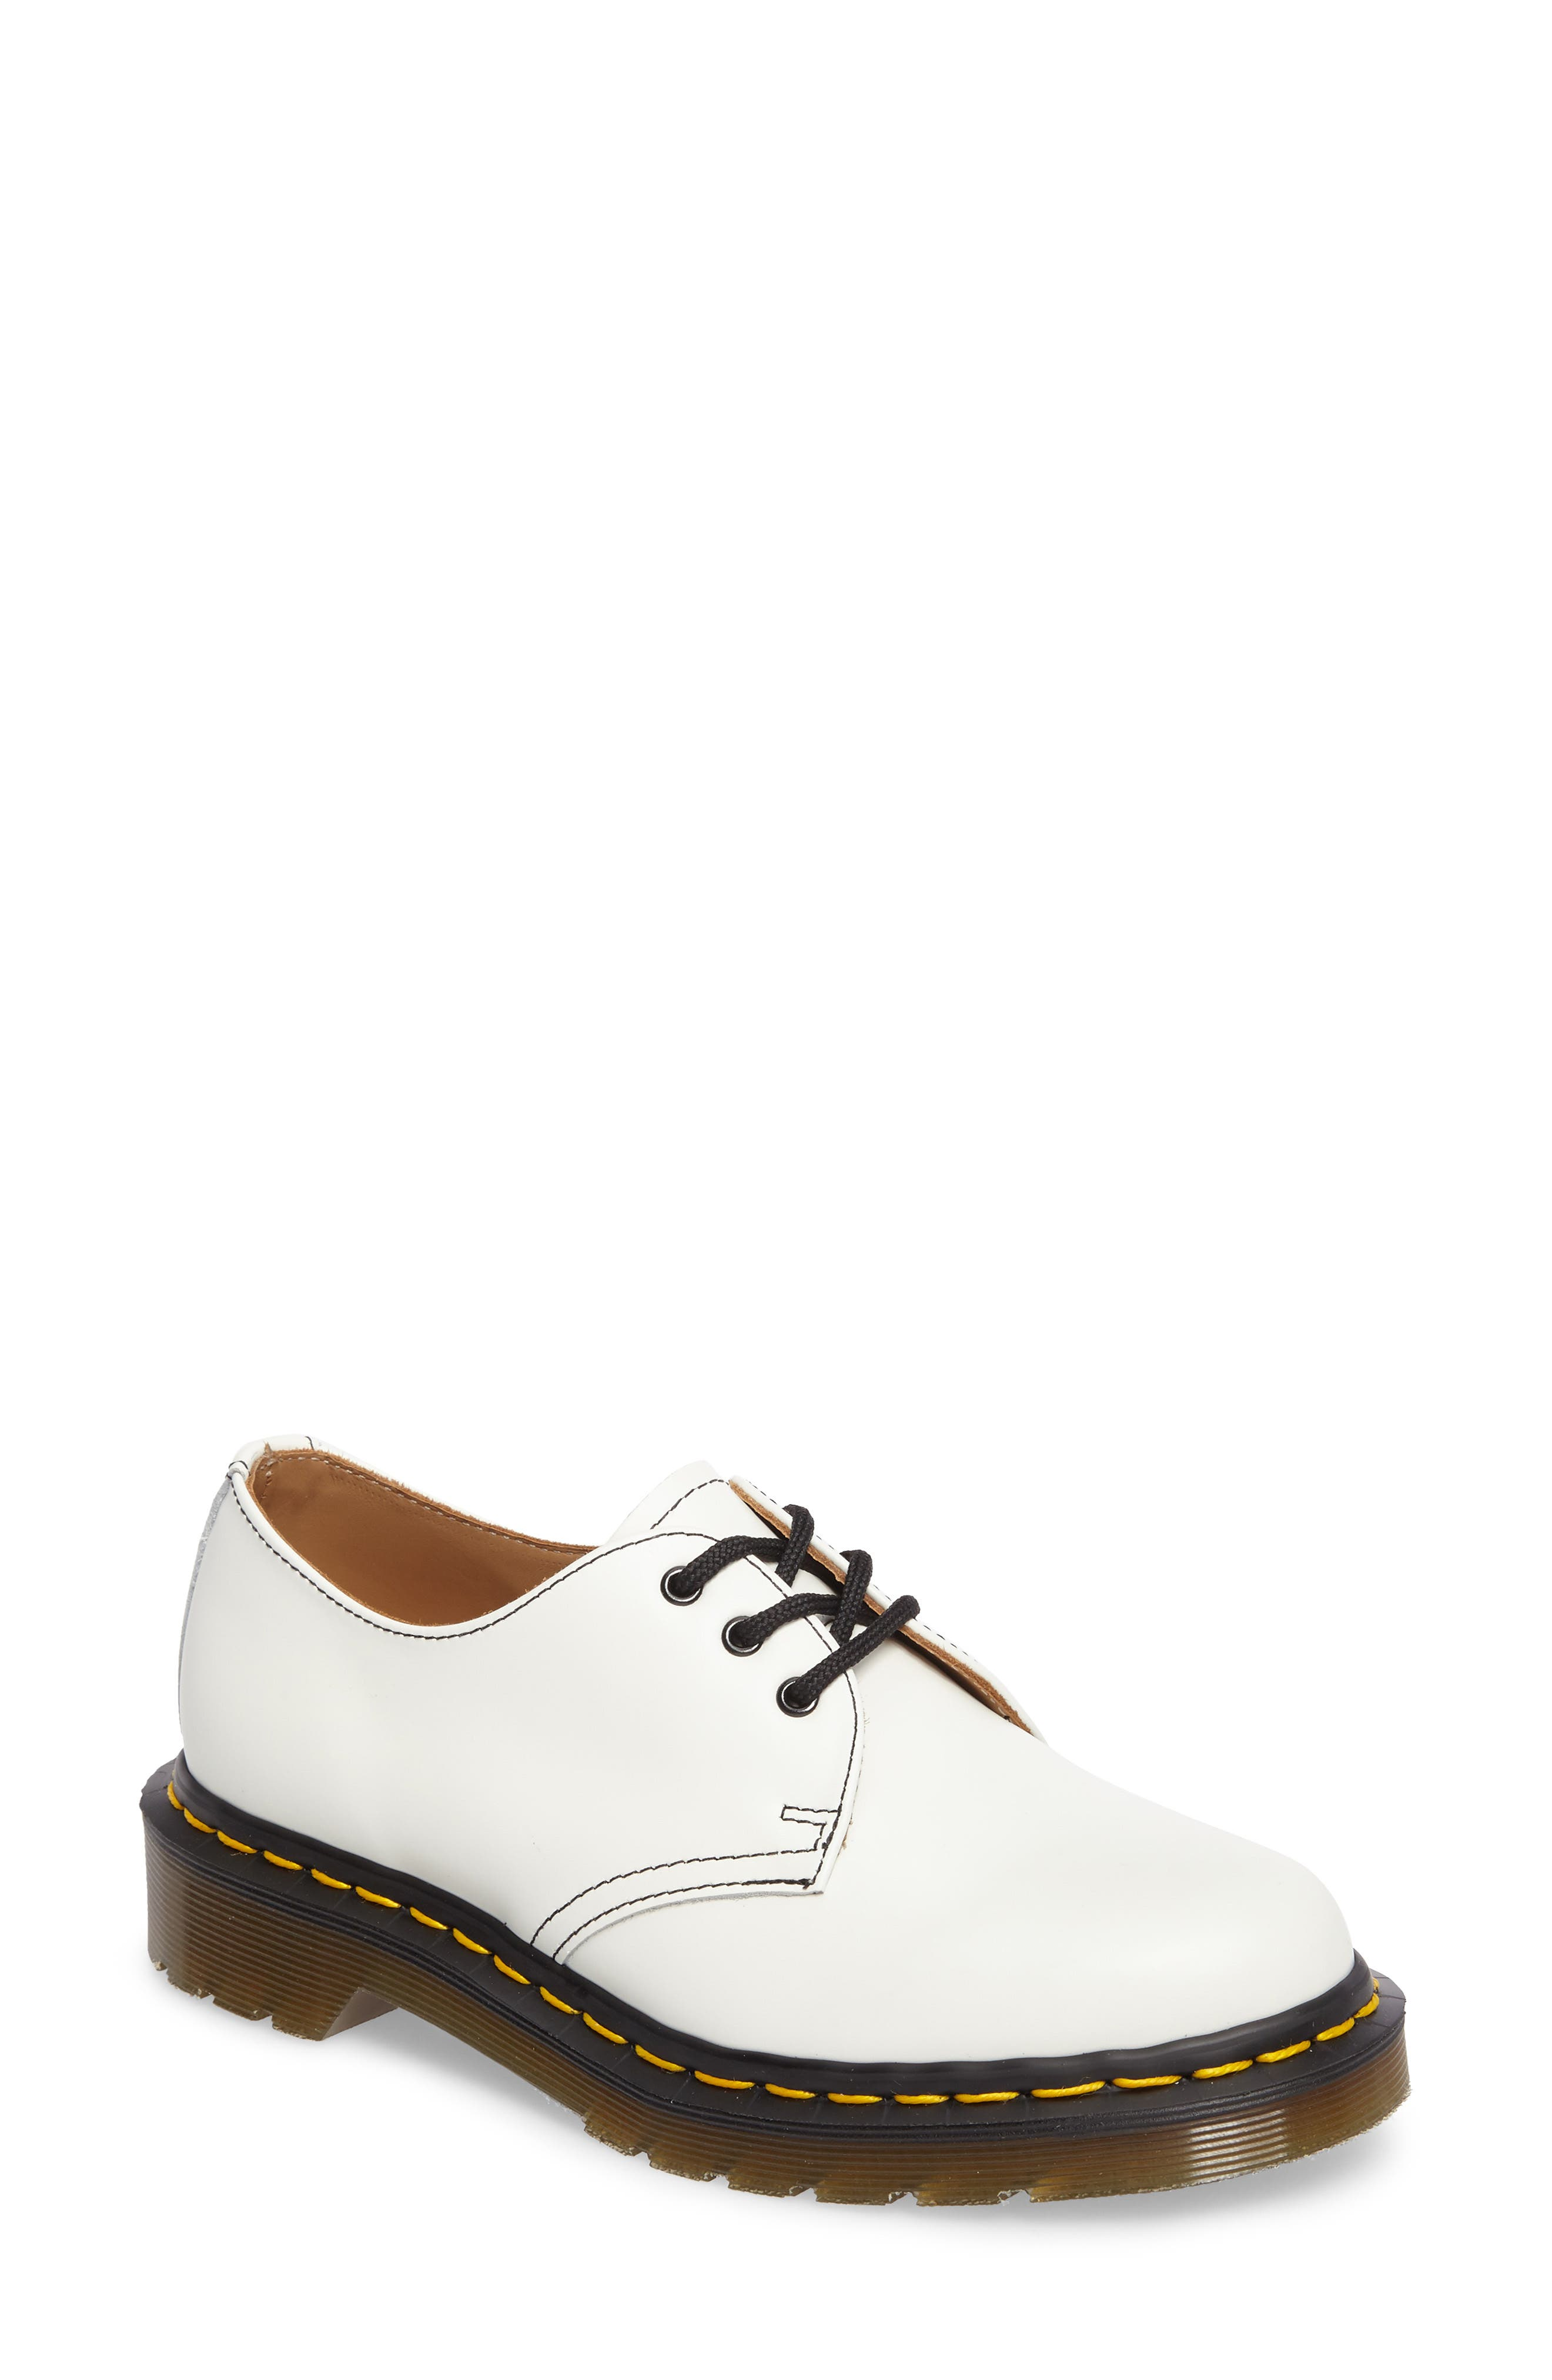 x Dr. Martens Pointy Toe Oxford,                         Main,                         color, White